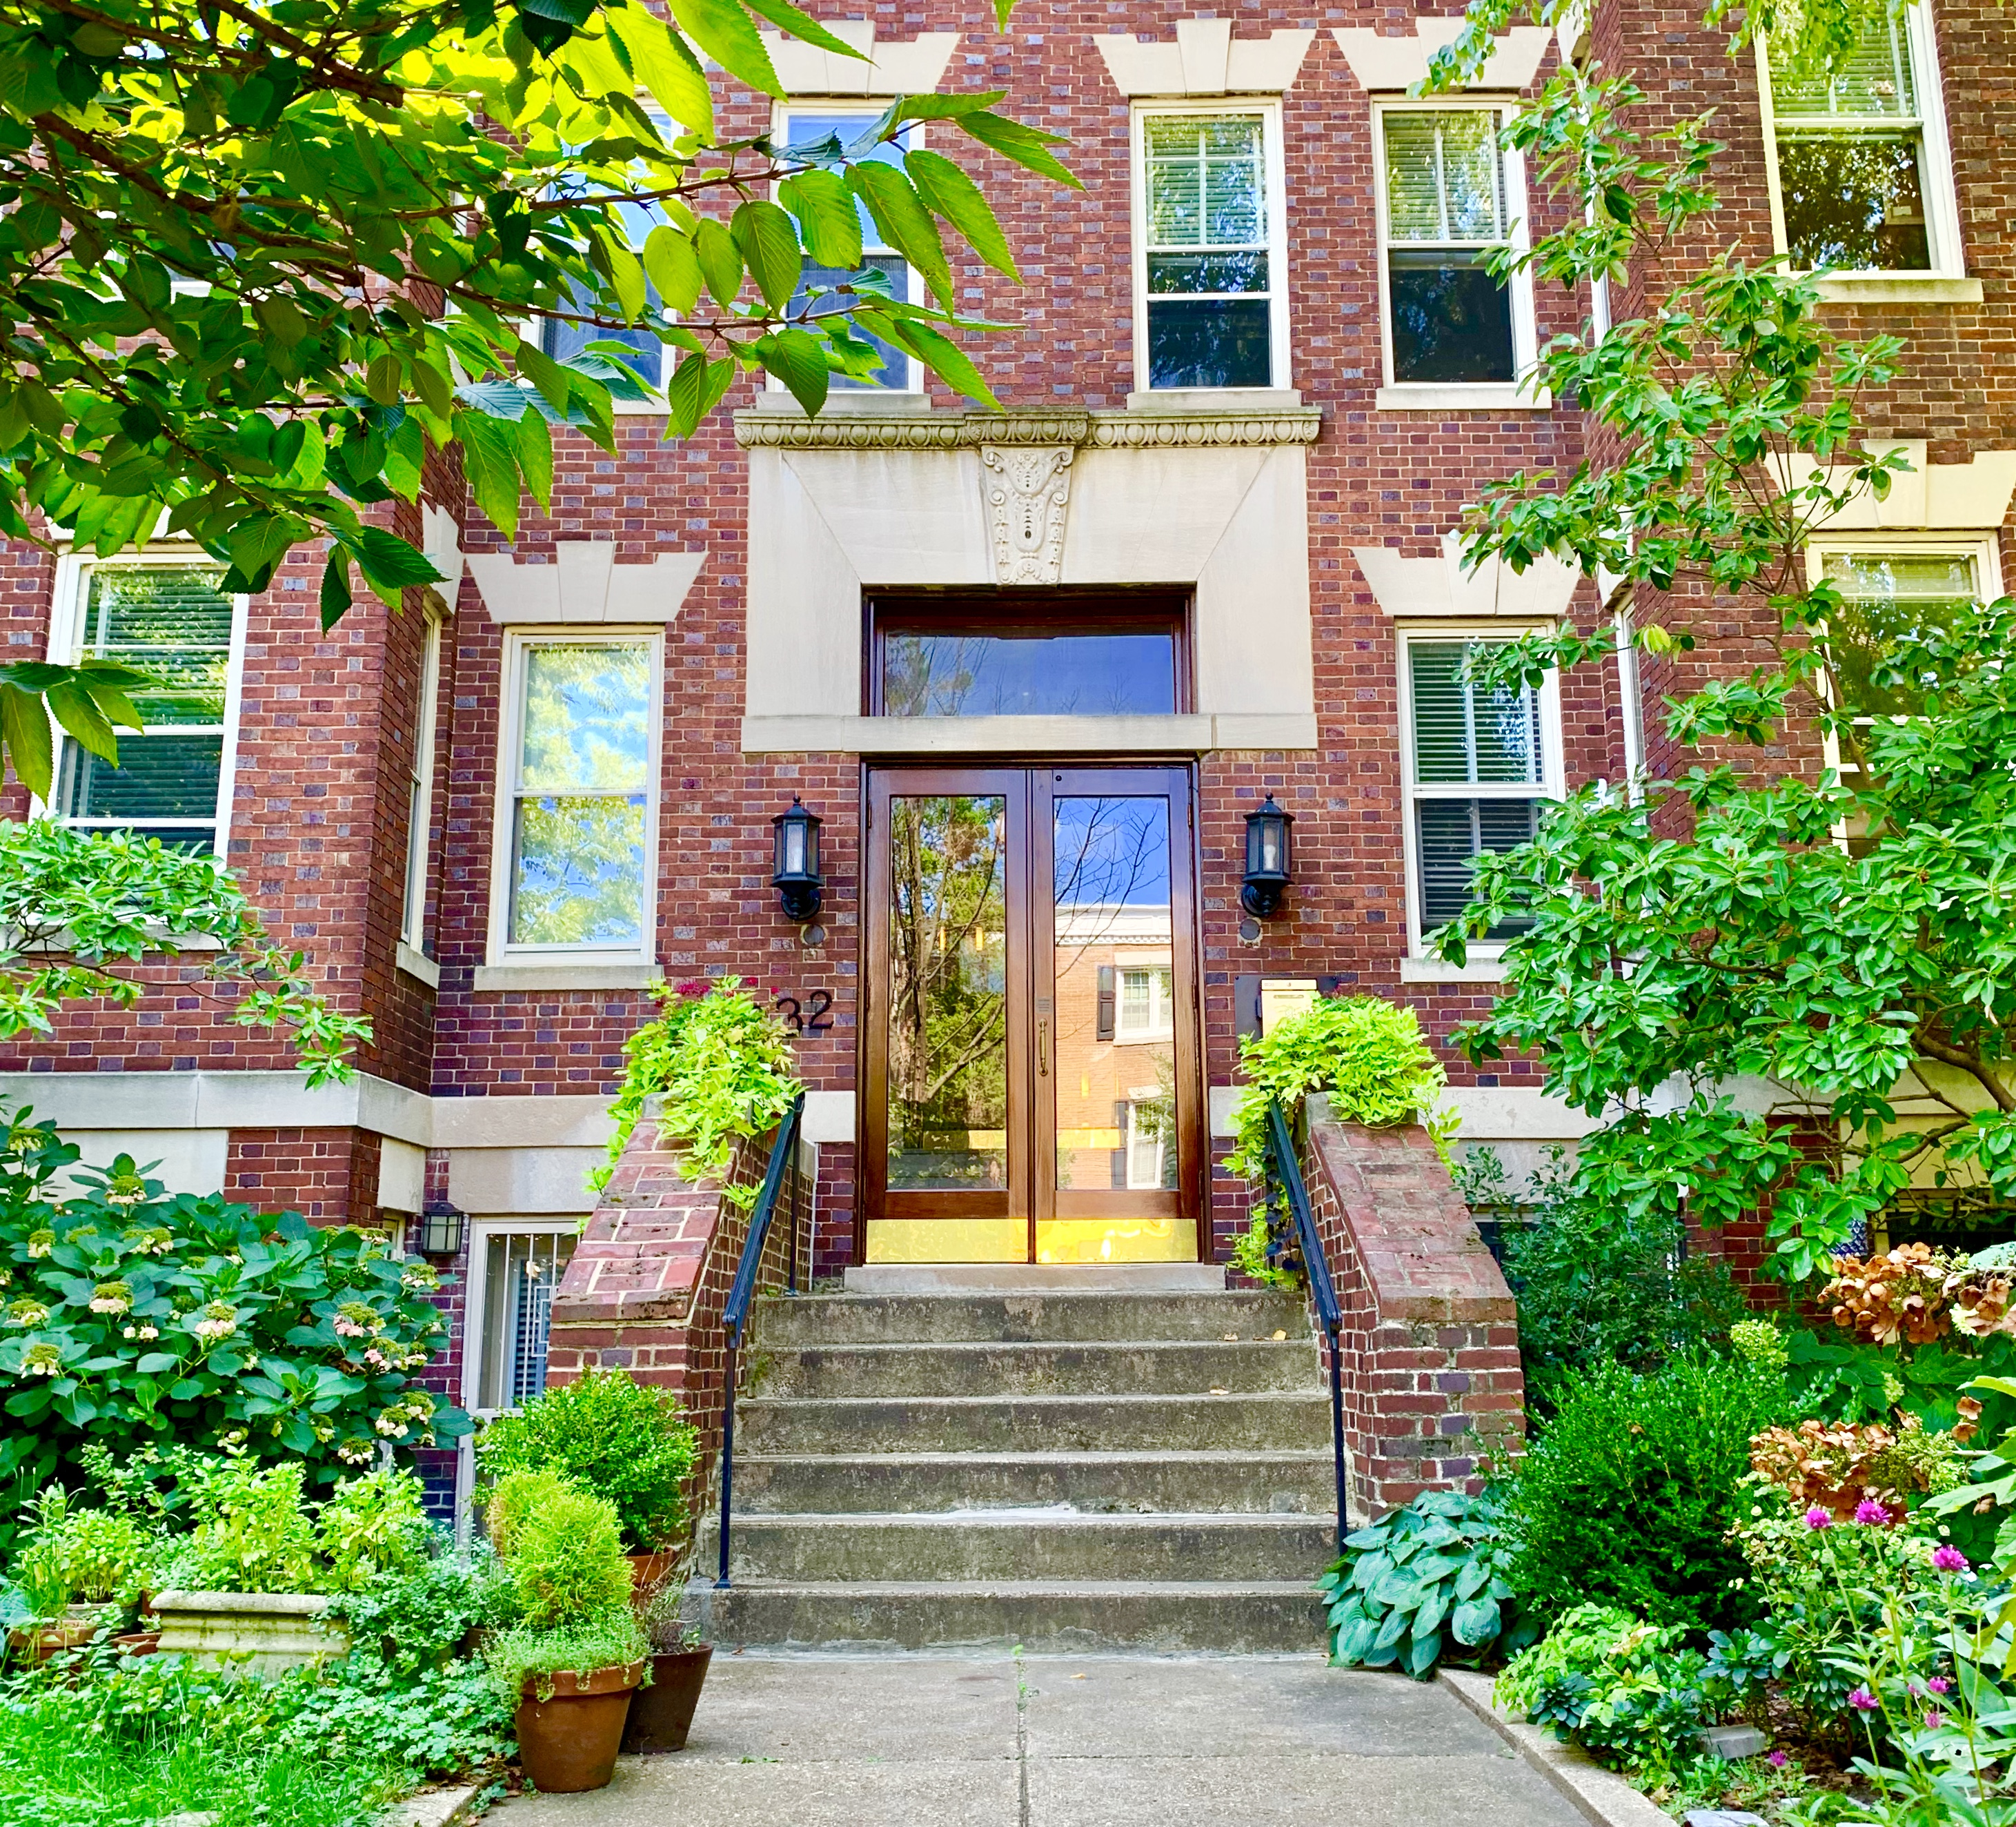 Beaux Arts Condos For Sale in Washington, DC. 1832 Biltmore Coop. 1832 Biltmore St NW. Artyom Shmatko Luxury Realtor